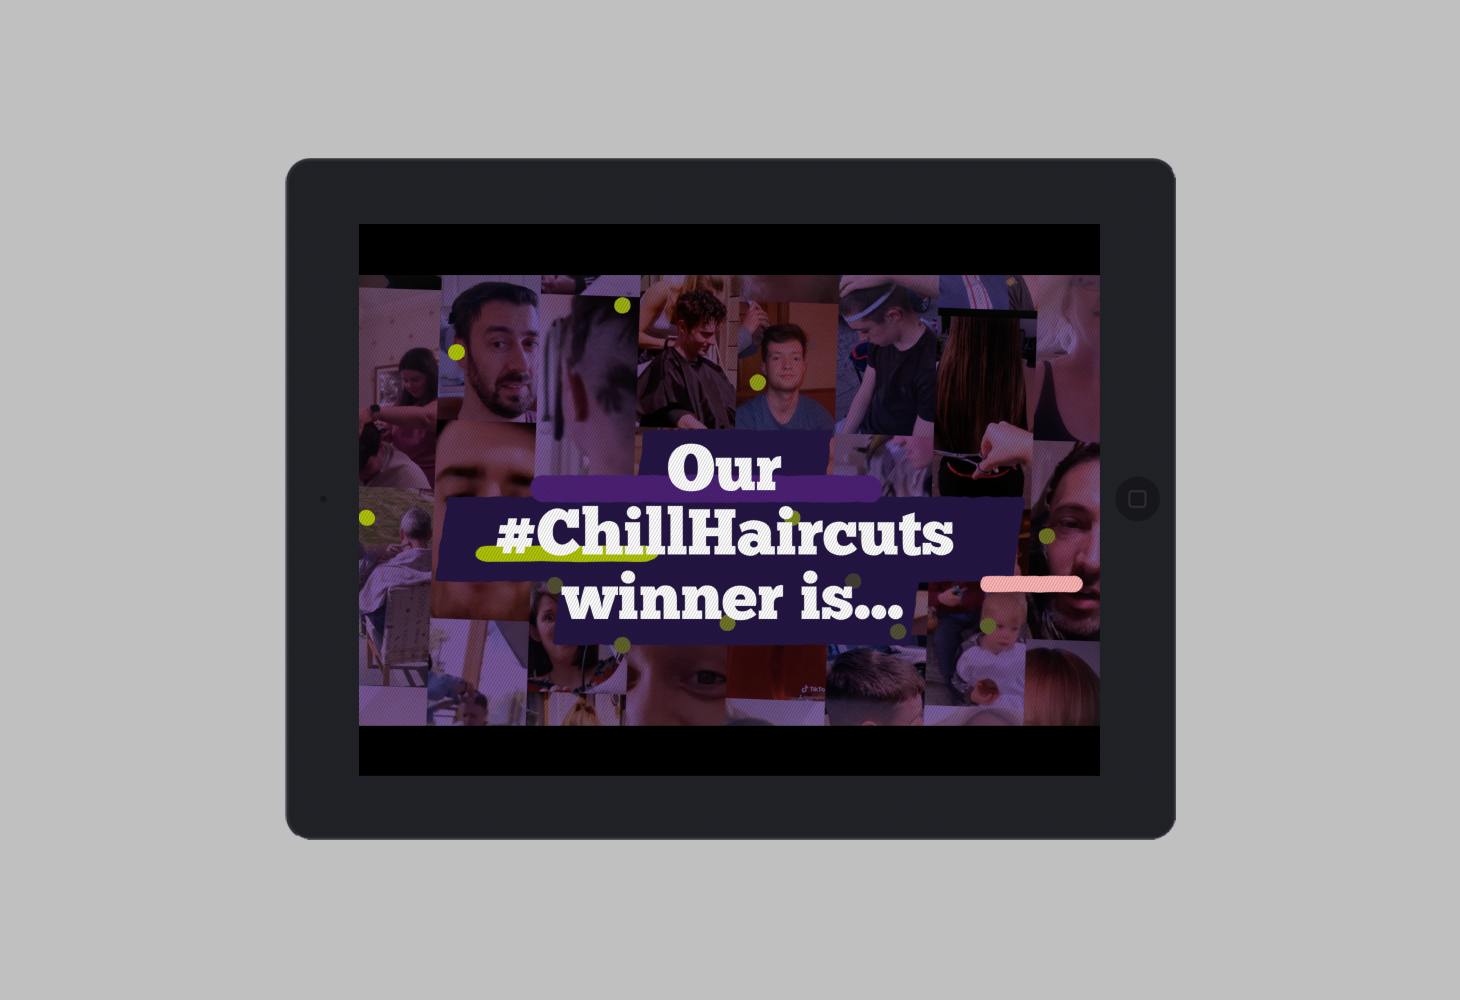 Chill - Haircut - Our winner is